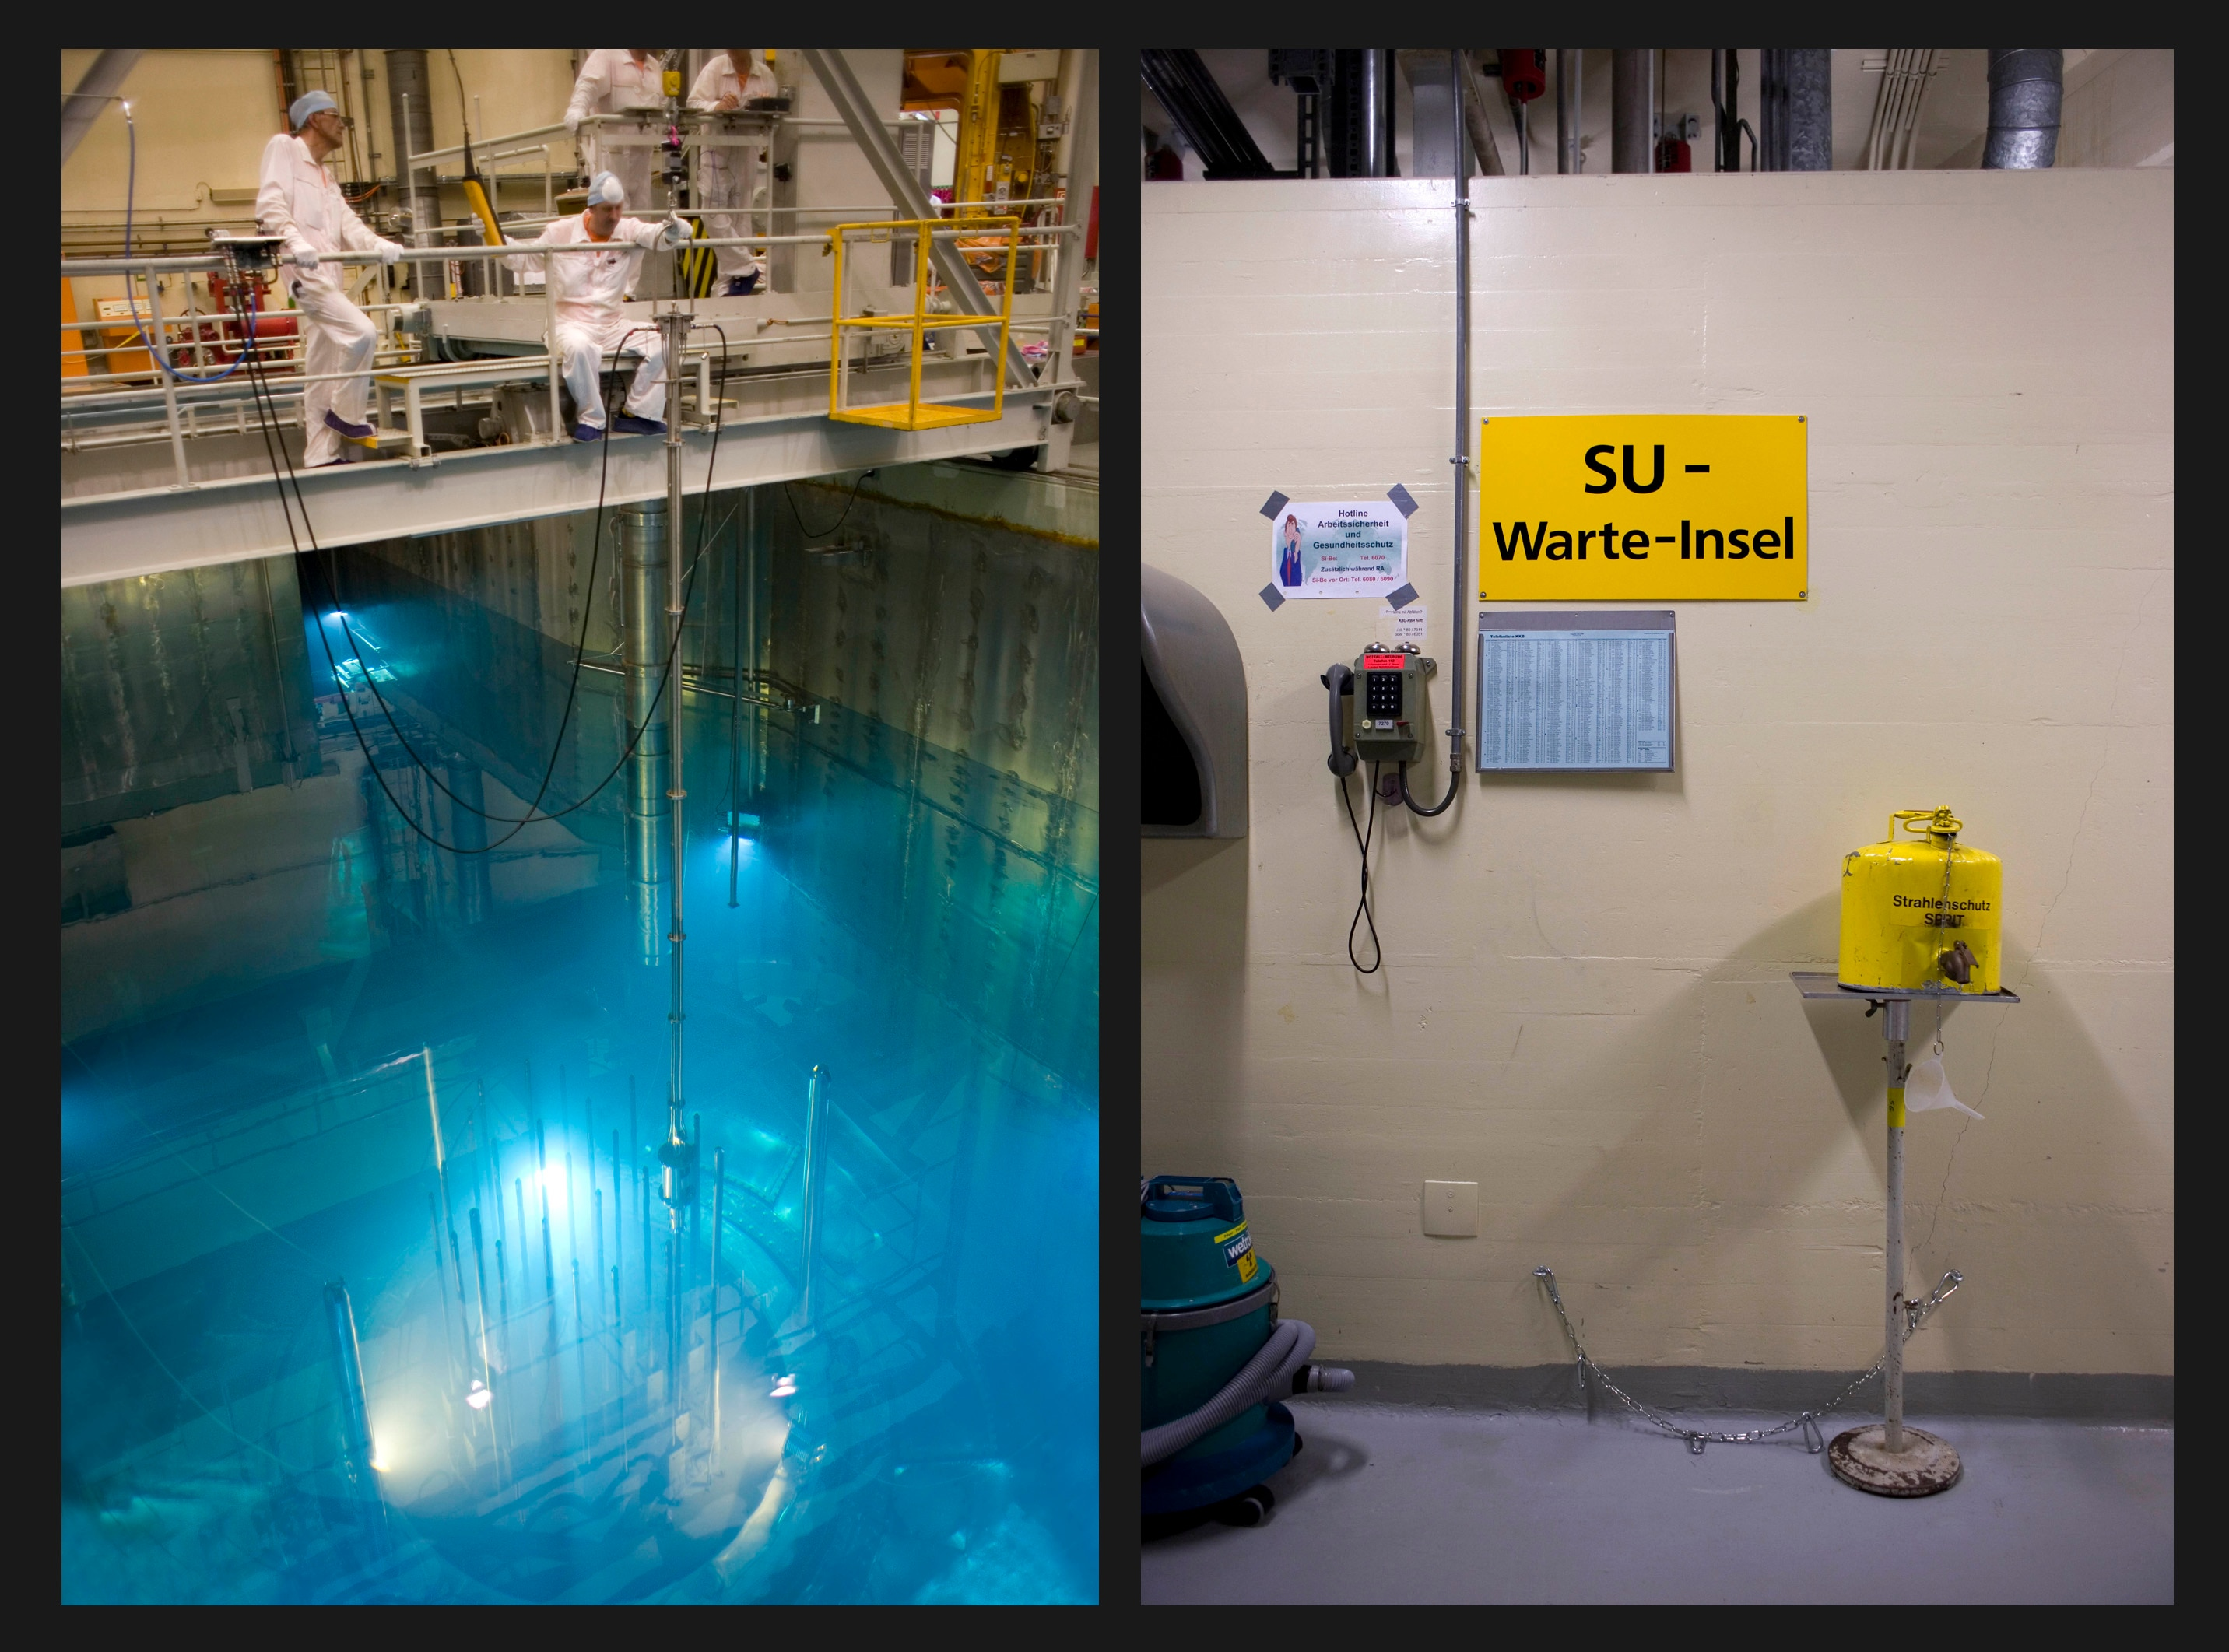 The reactor core is visible inside the open pressure vessel (left). A waiting booth for personnel in the event of an incident.